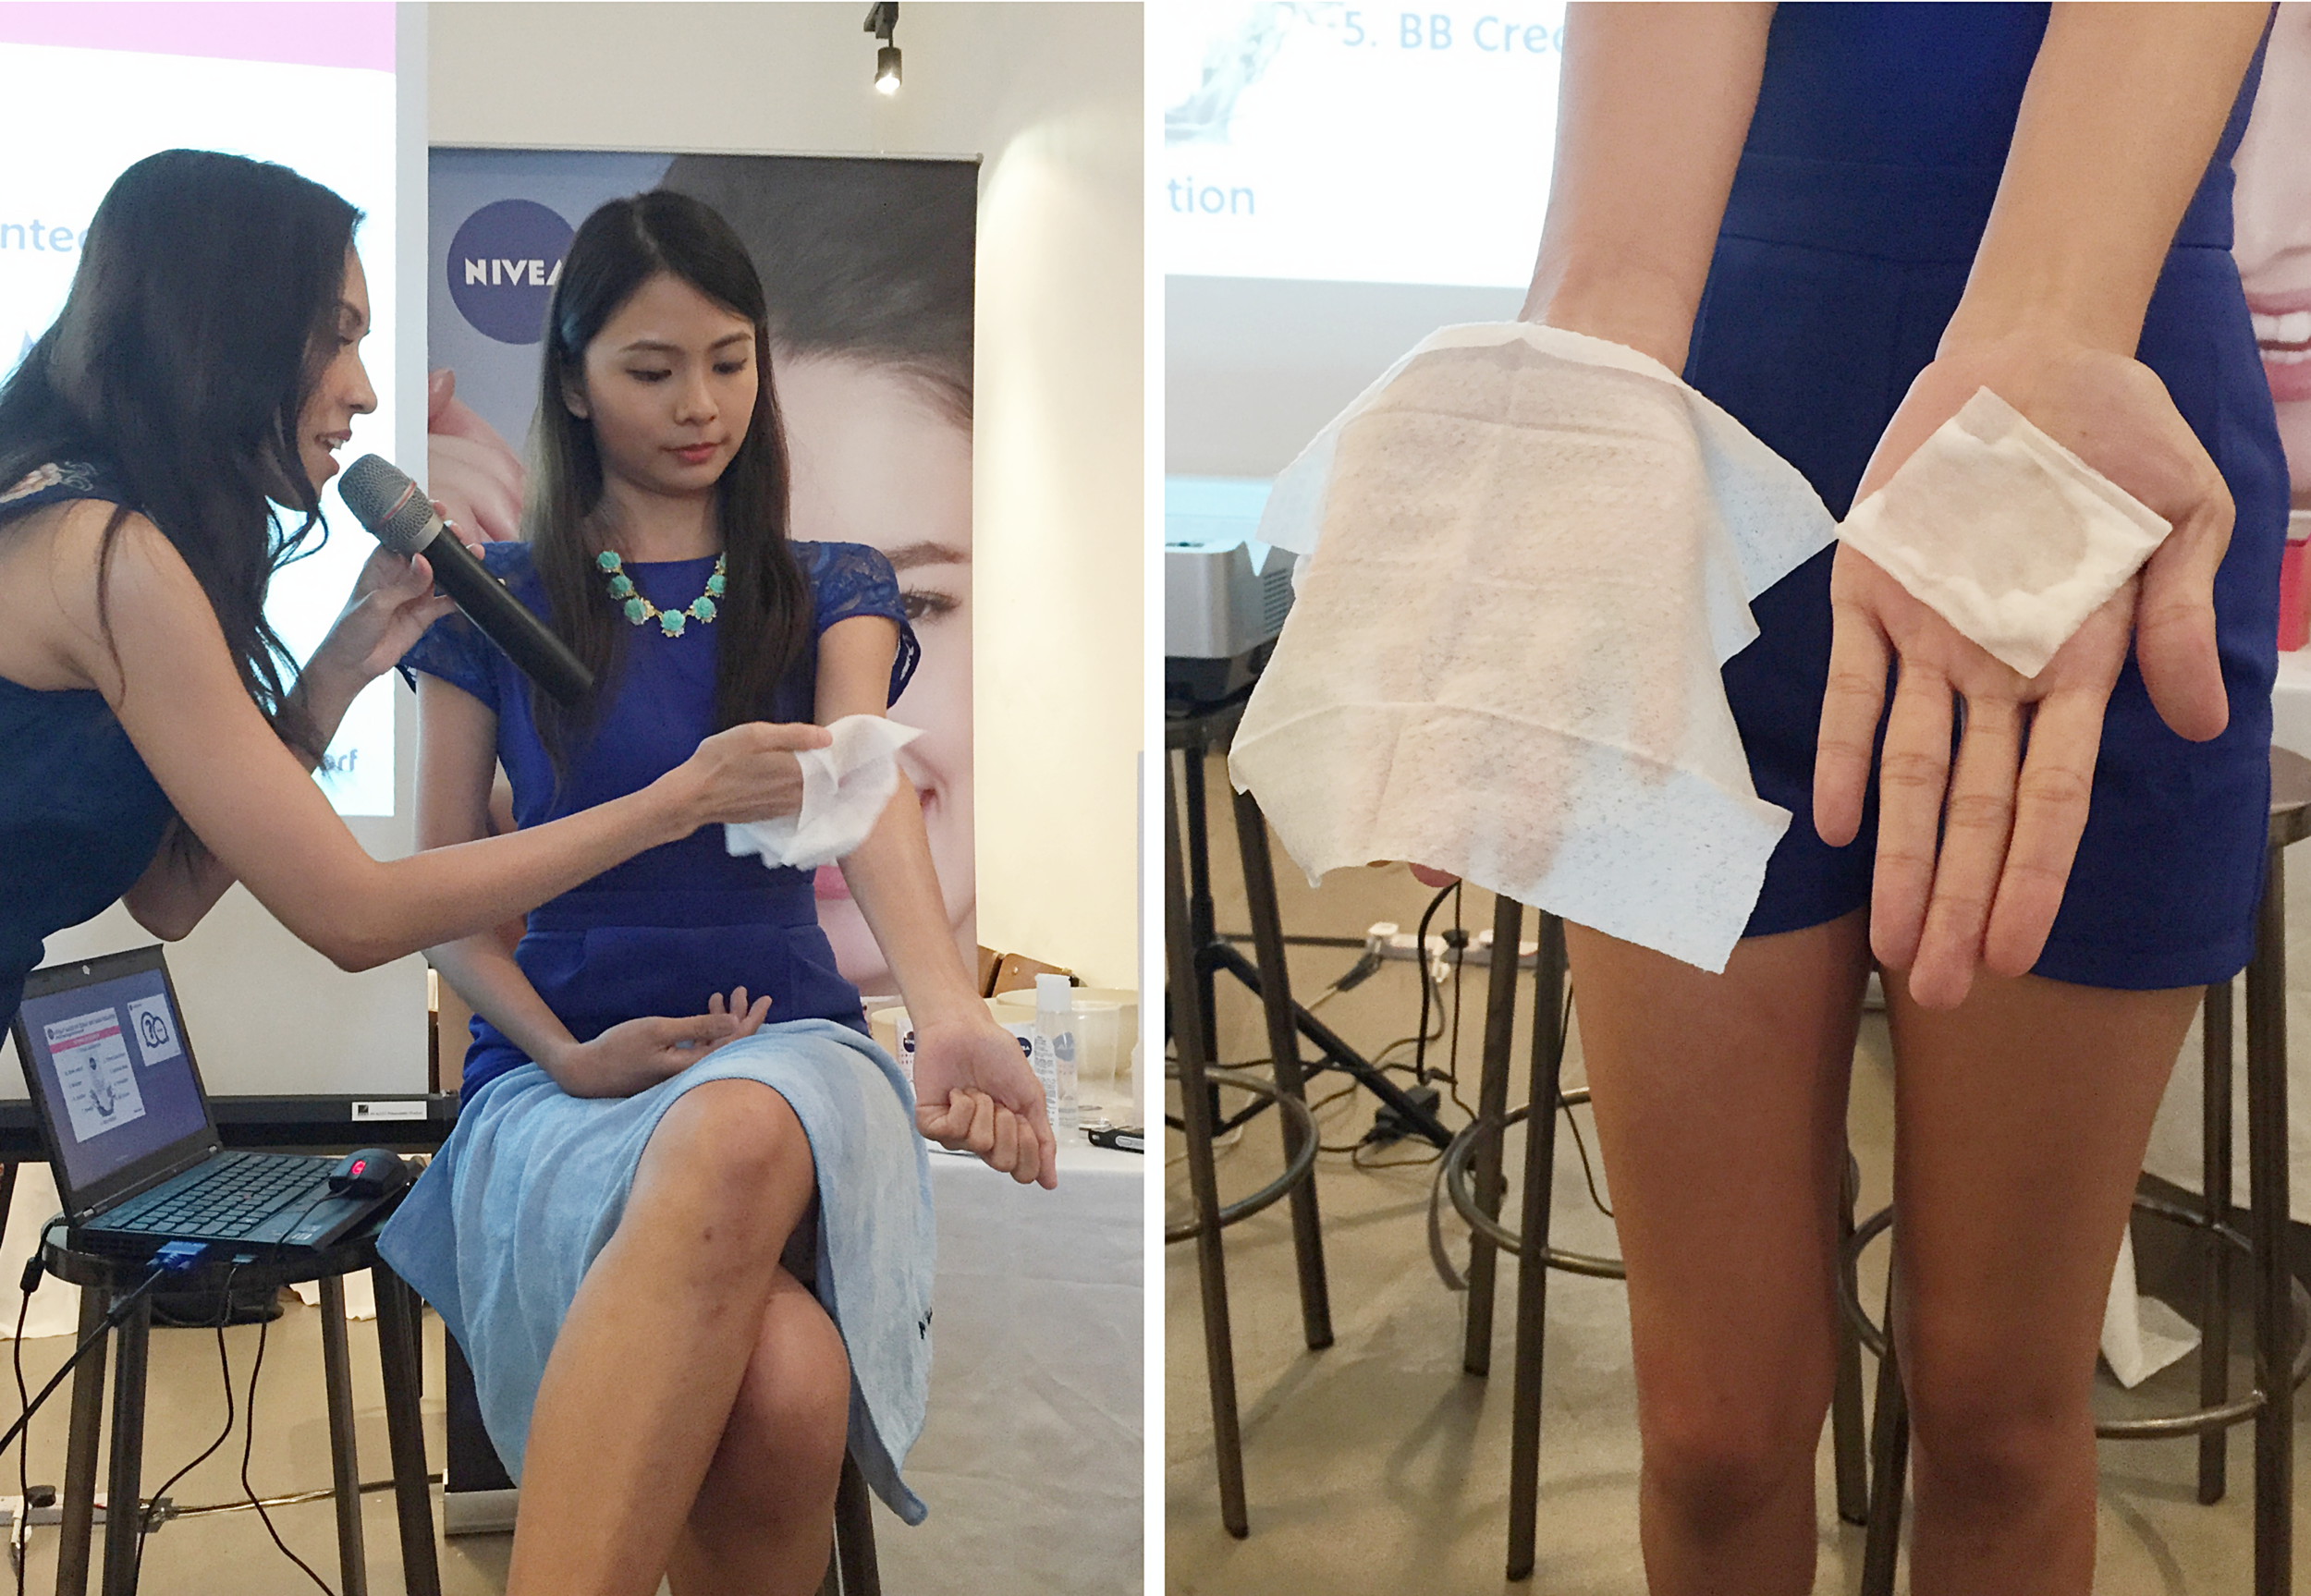 NIVEA Make Up Clear Launch: Host checking for make up residue using the NIVEA Make Up Clear Cleansing Wipes and Micellar Water